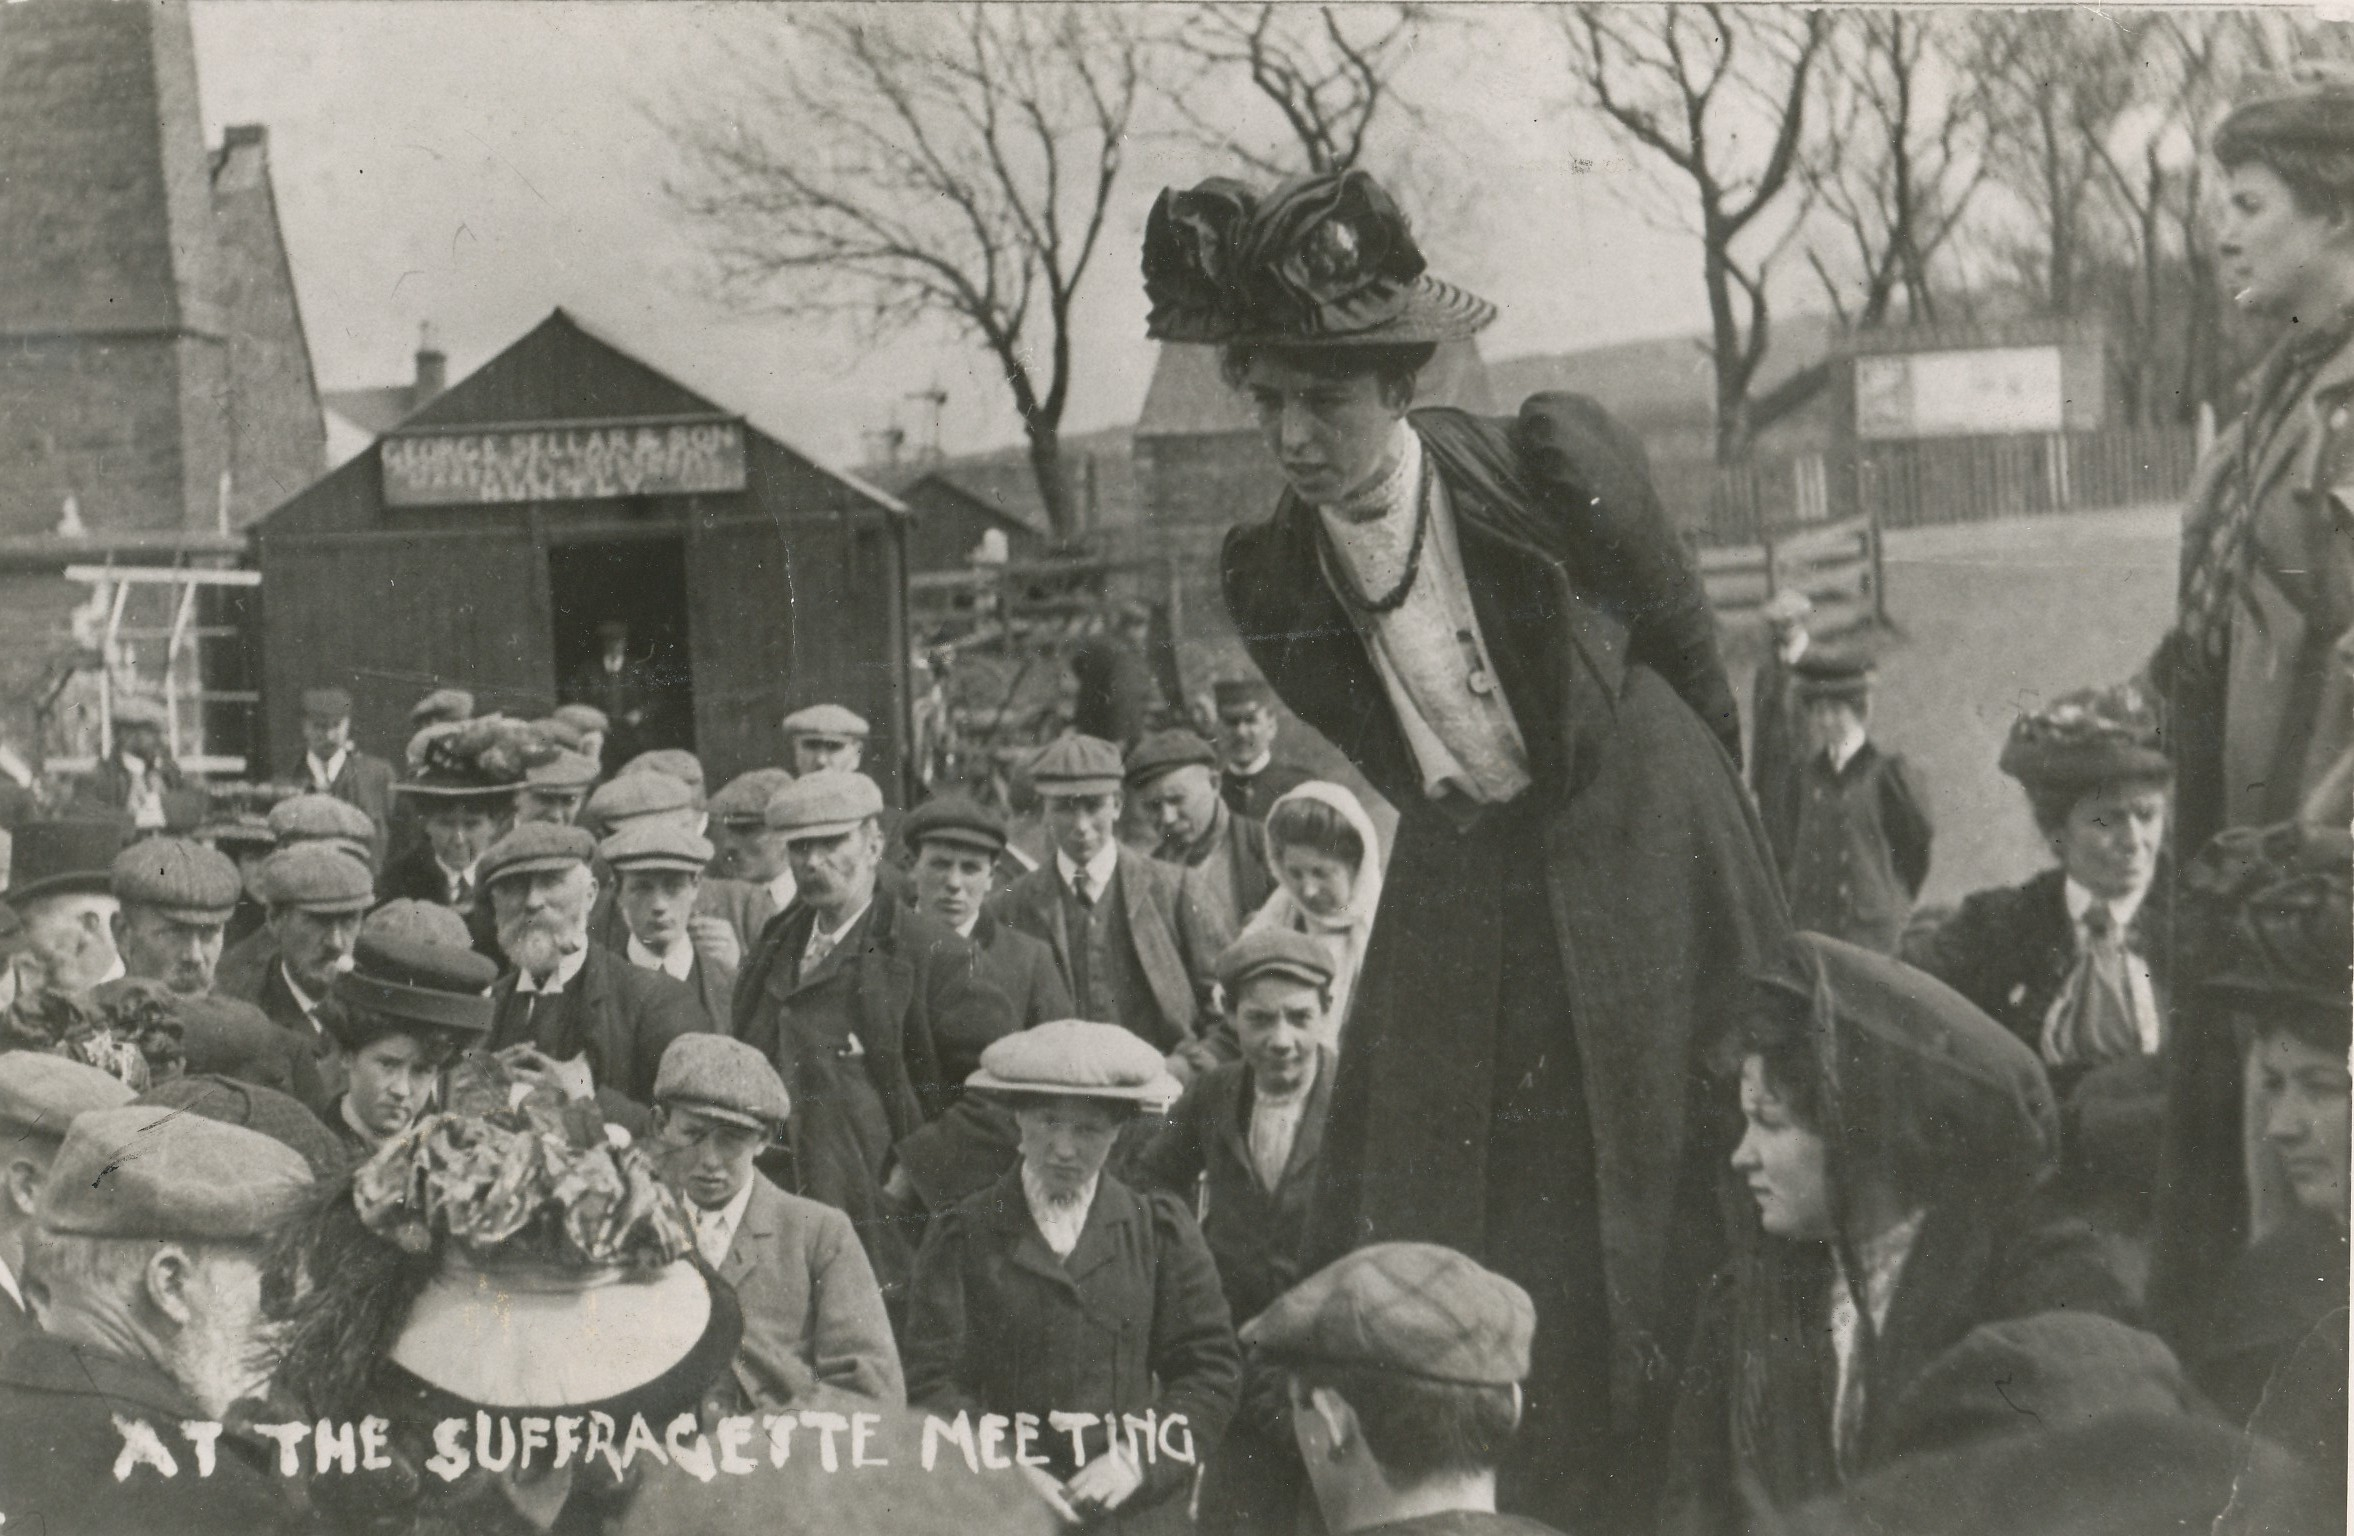 Dundee suffragettes speak out in the campaign for the vote.